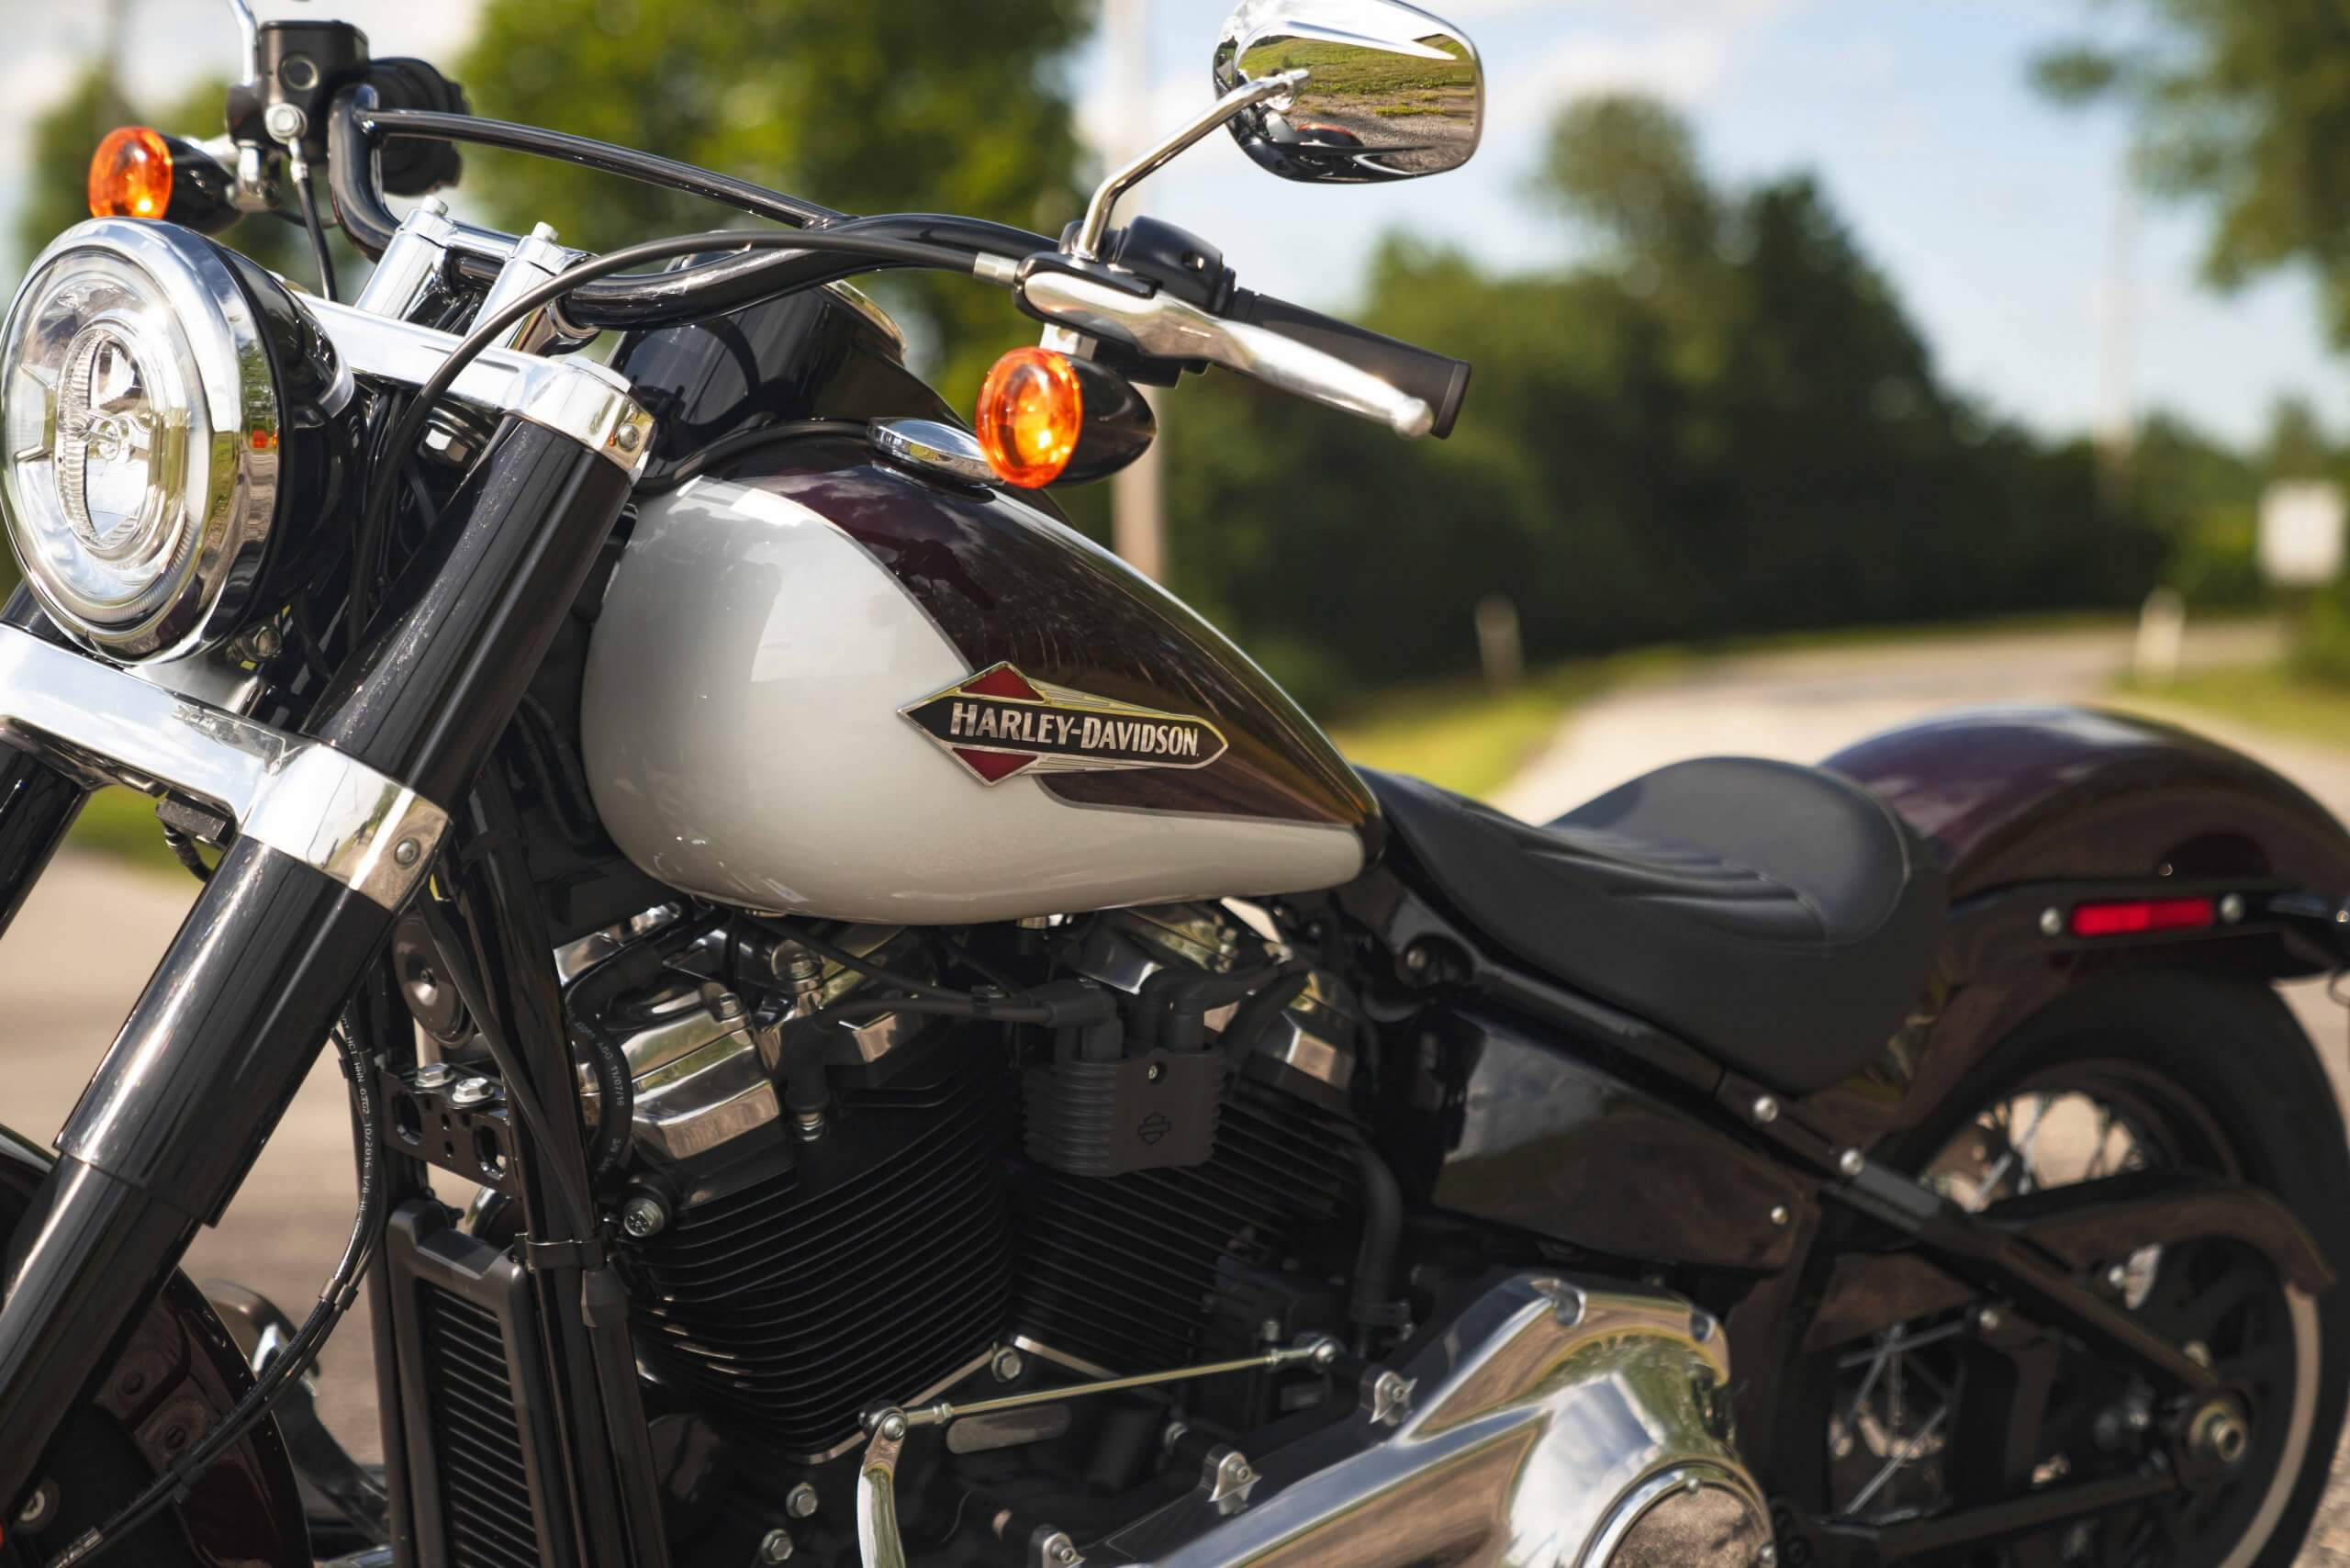 Milwaukee-Eight® 107 V-Twin engine and Hollywood bars.